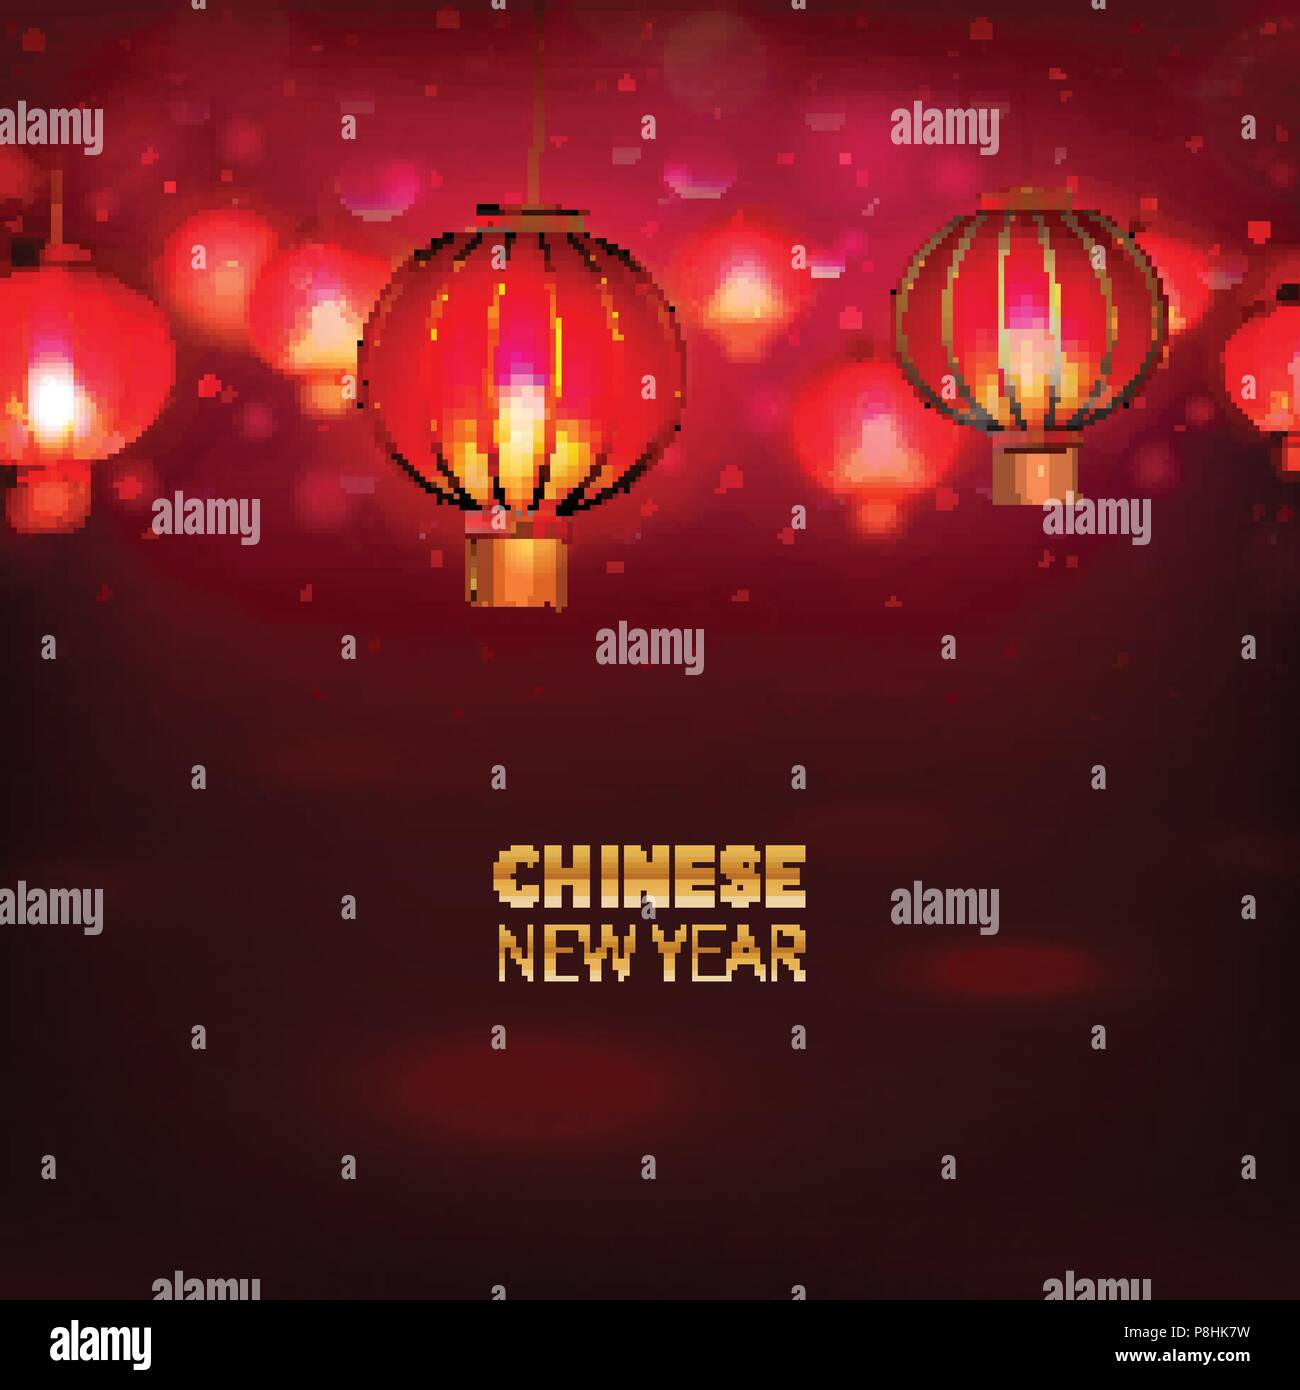 stock vector illustration happy chinese new year background card seamless chinese red paper lantern lights chinese happy new year traditional